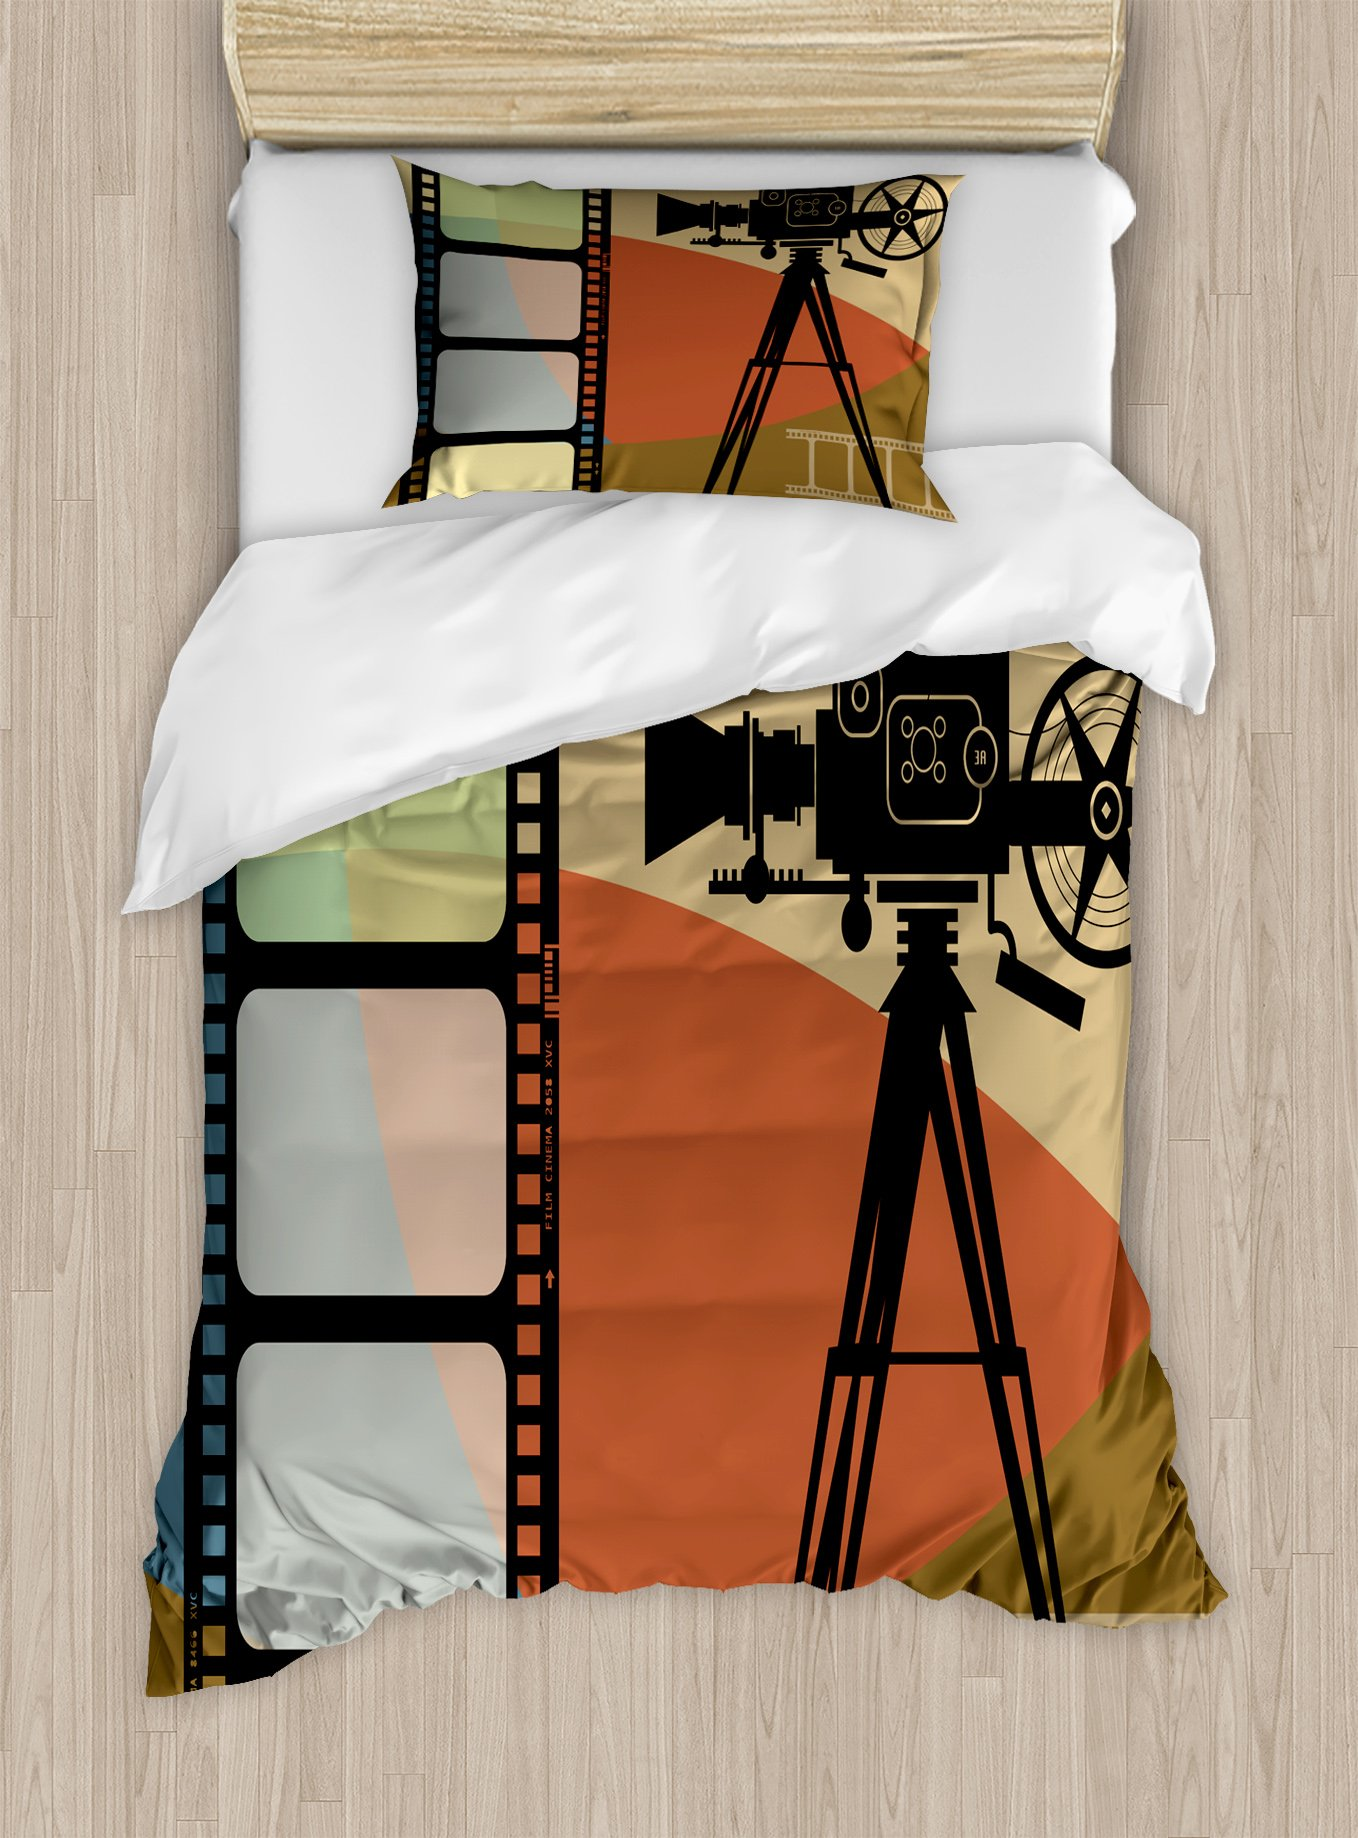 Ambesonne Movie Theater Twin Size Duvet Cover Set, Abstract Retro Style Colorful Composition with Projection and Strip Border, Decorative 2 Piece Bedding Set with 1 Pillow Sham, Multicolor